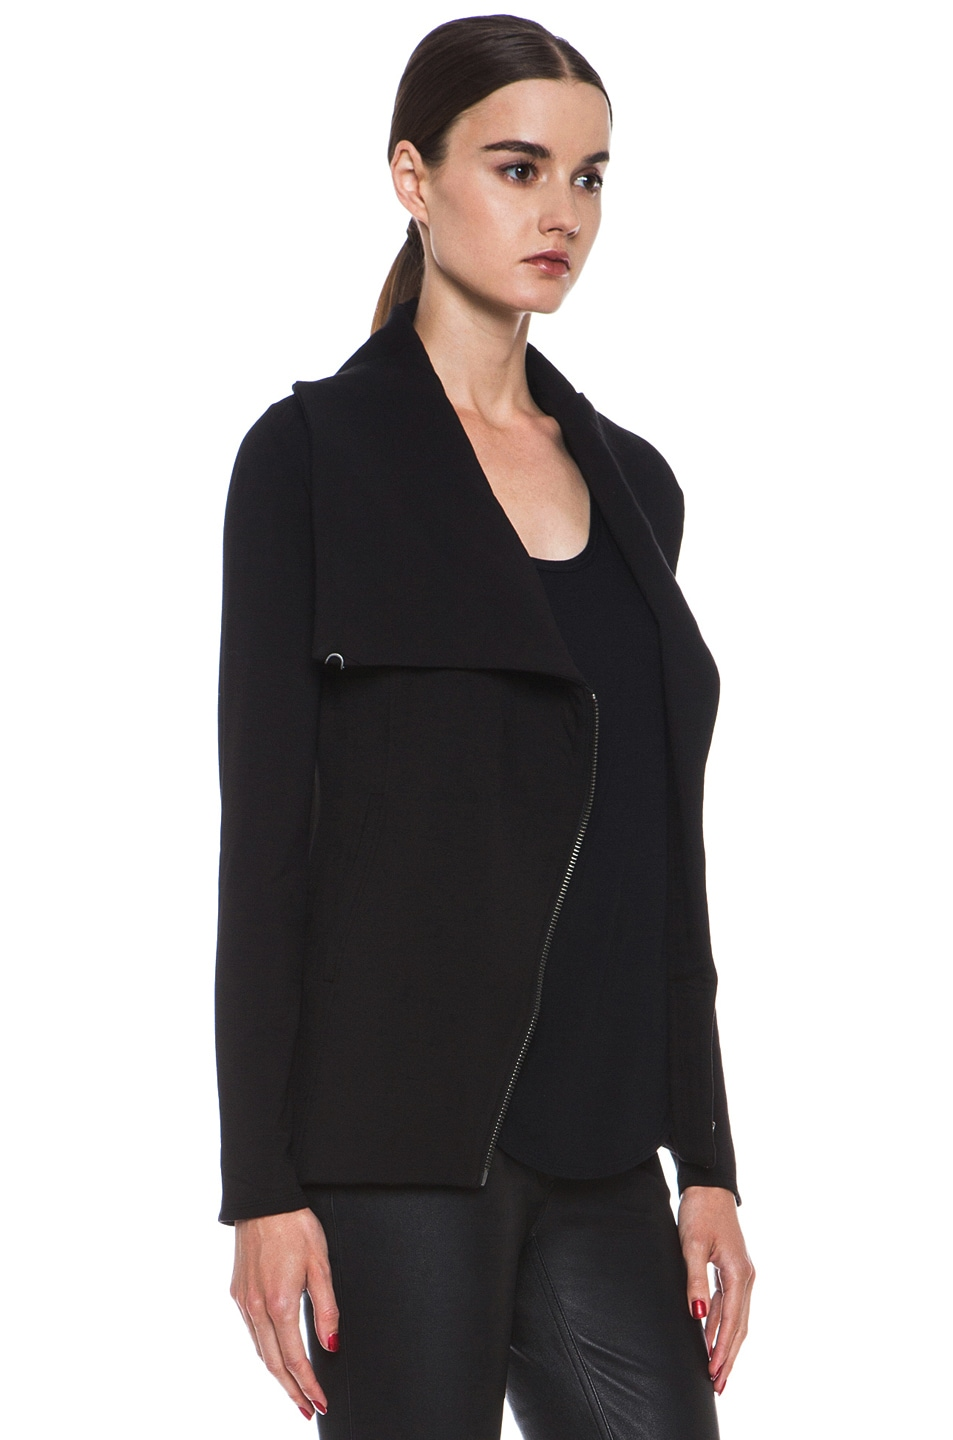 Image 4 of HELMUT Helmut Lang Villus Zip Up Sweatshirt Jacket in Black